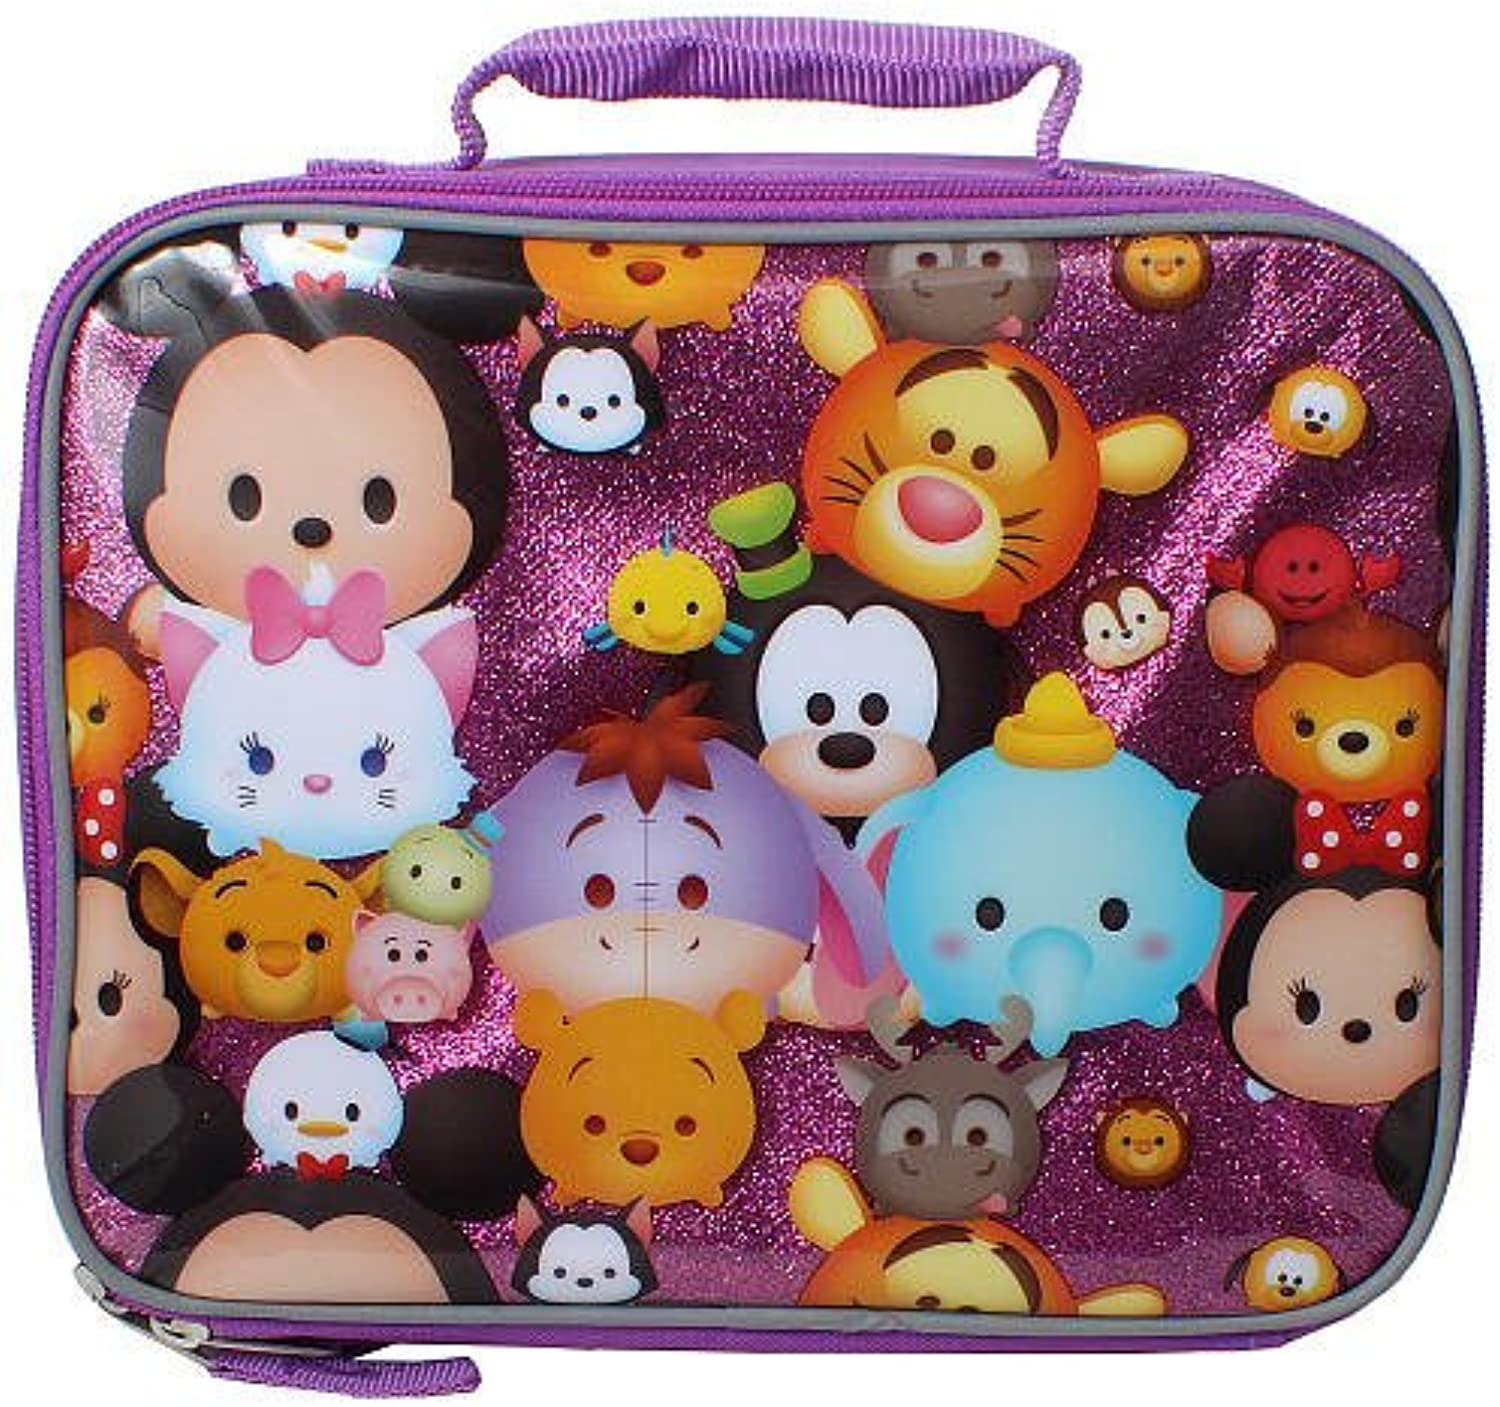 Disney Tsum Tsum Stacks Lunch Kit by Accessory Innovations